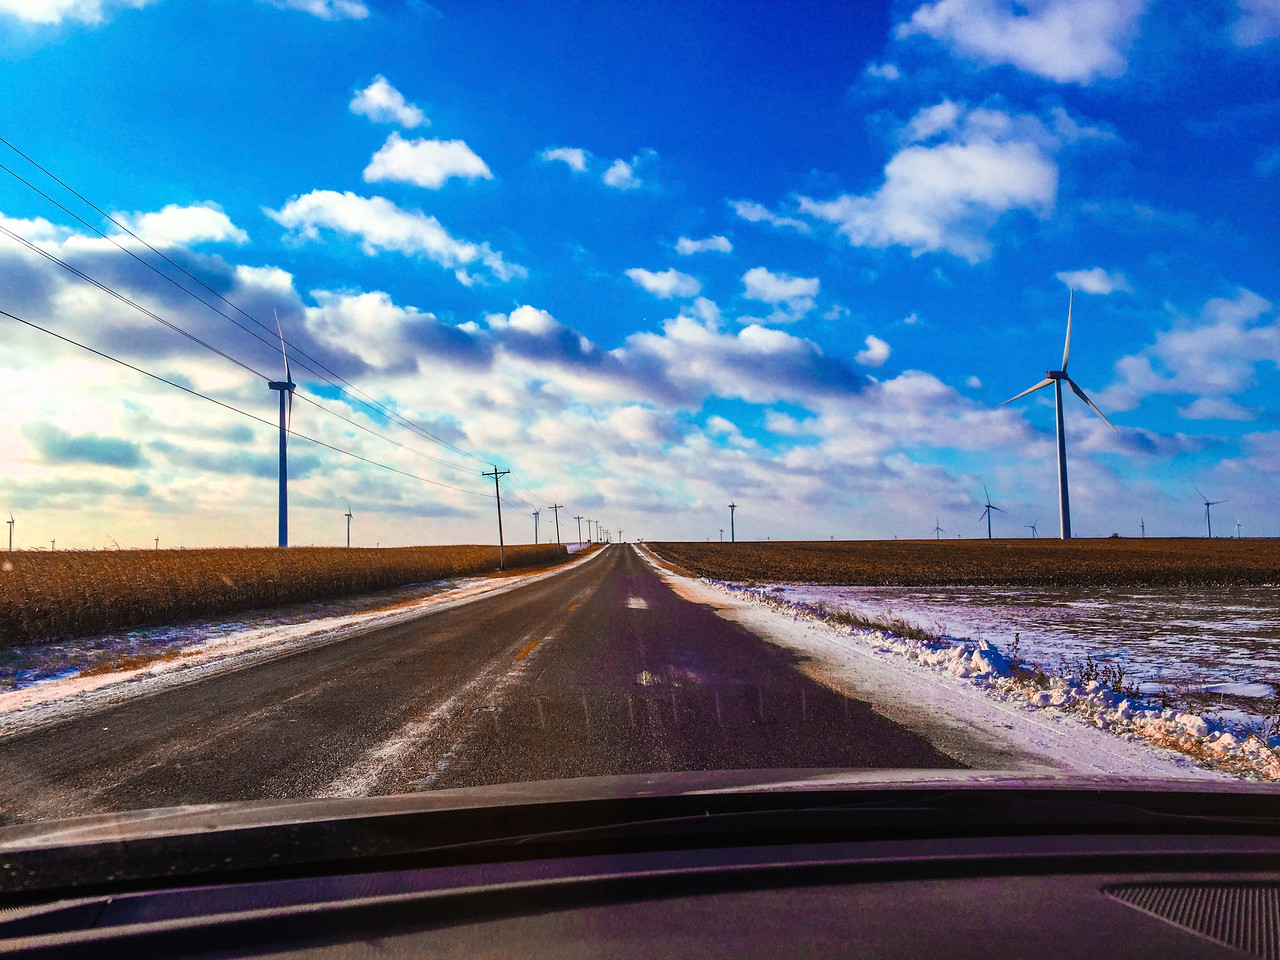 Rural road through wind farm.